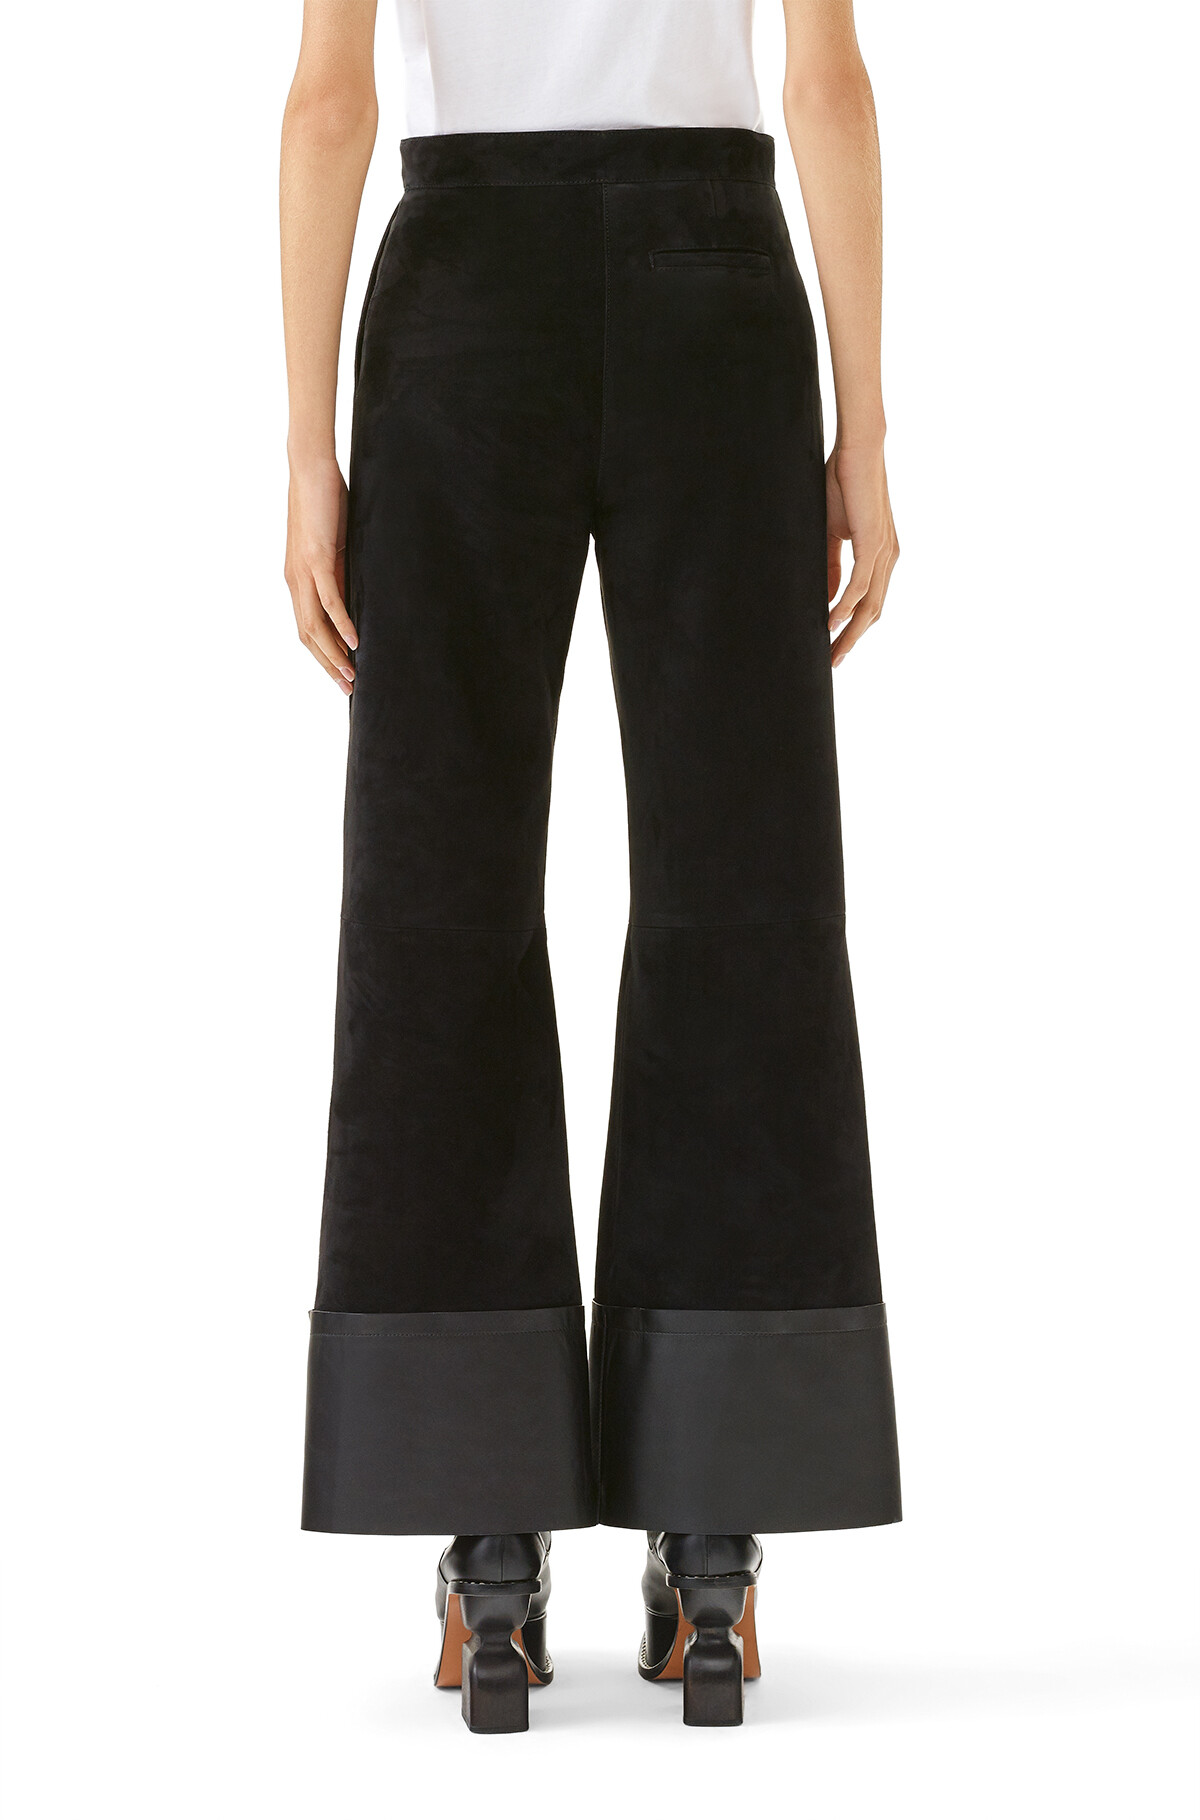 LOEWE Flare Trousers Negro front